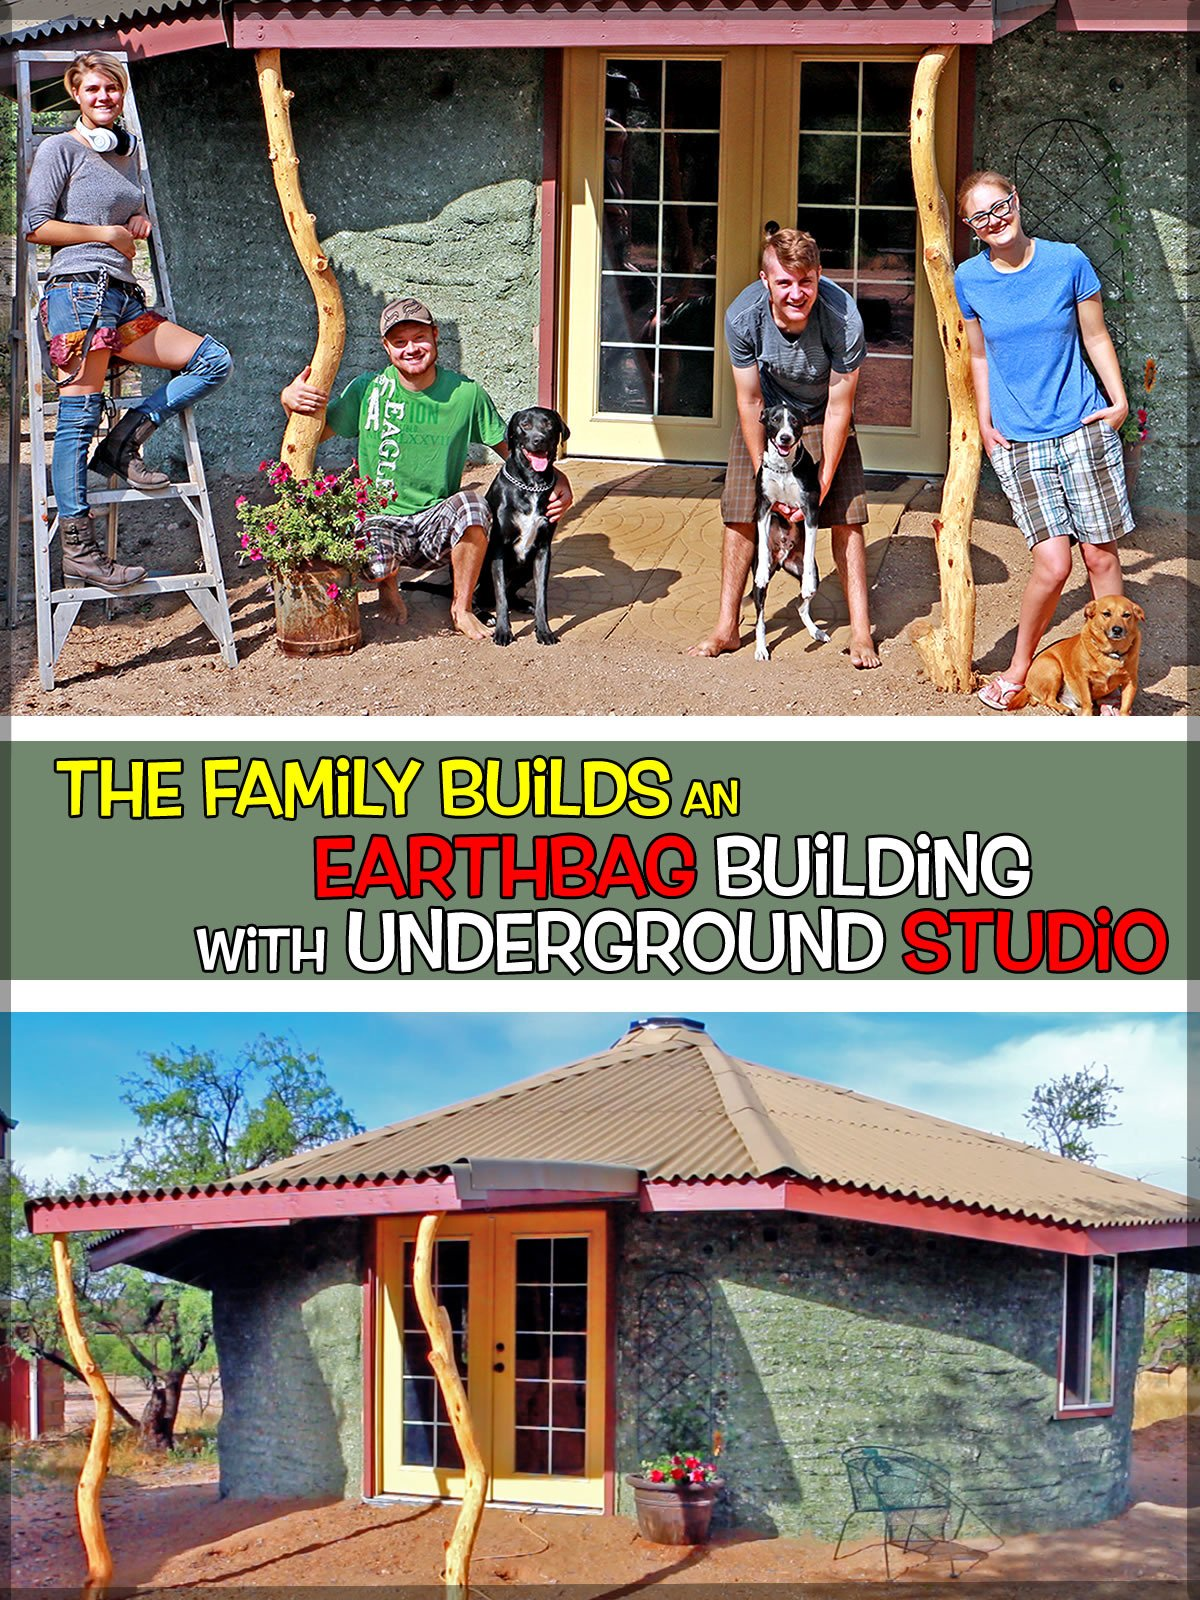 The Family Builds an Earthbag Building with Underground Studio